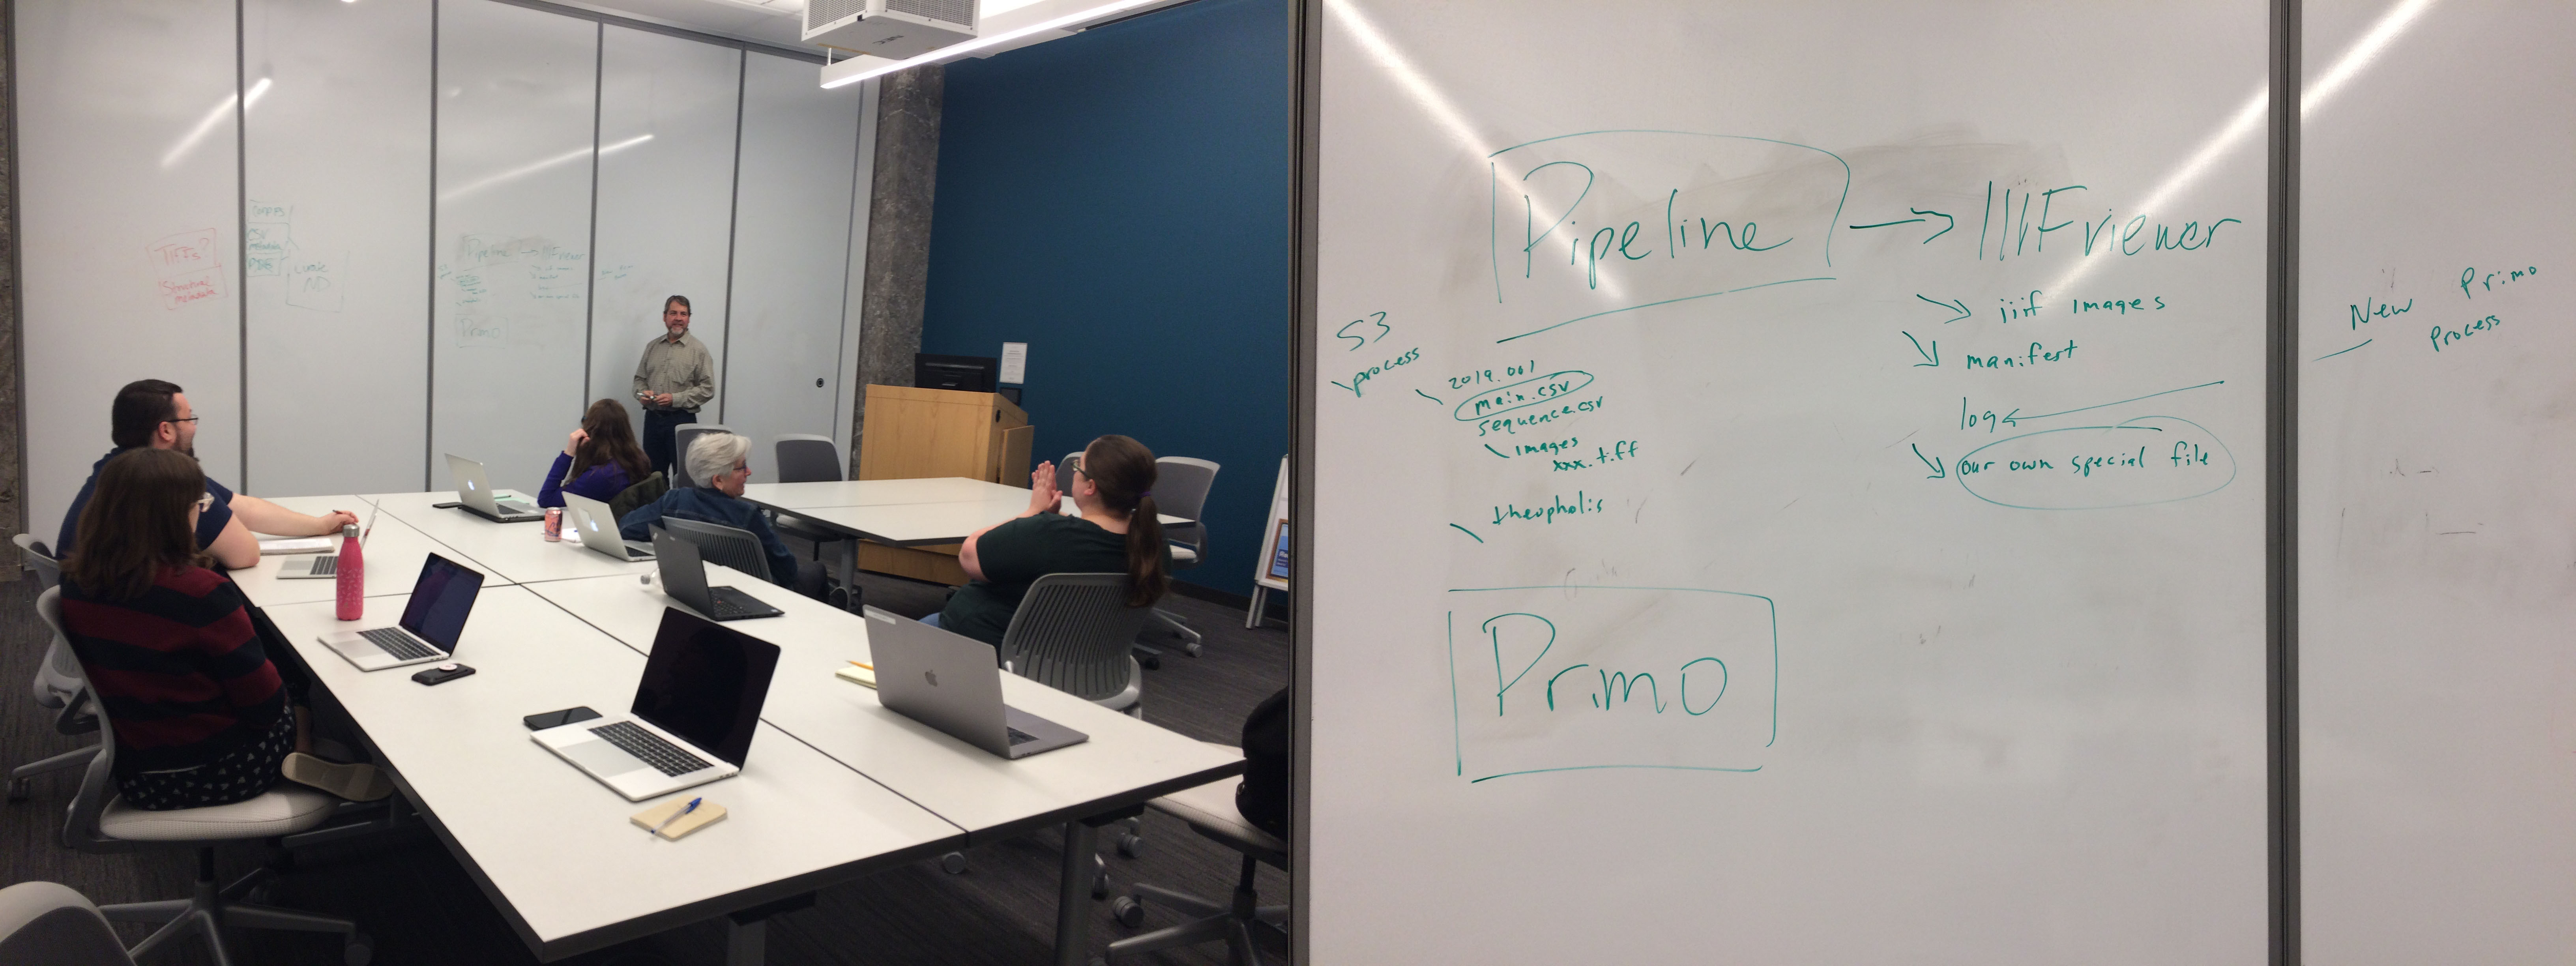 Image of group working at desks and white board with diagrams